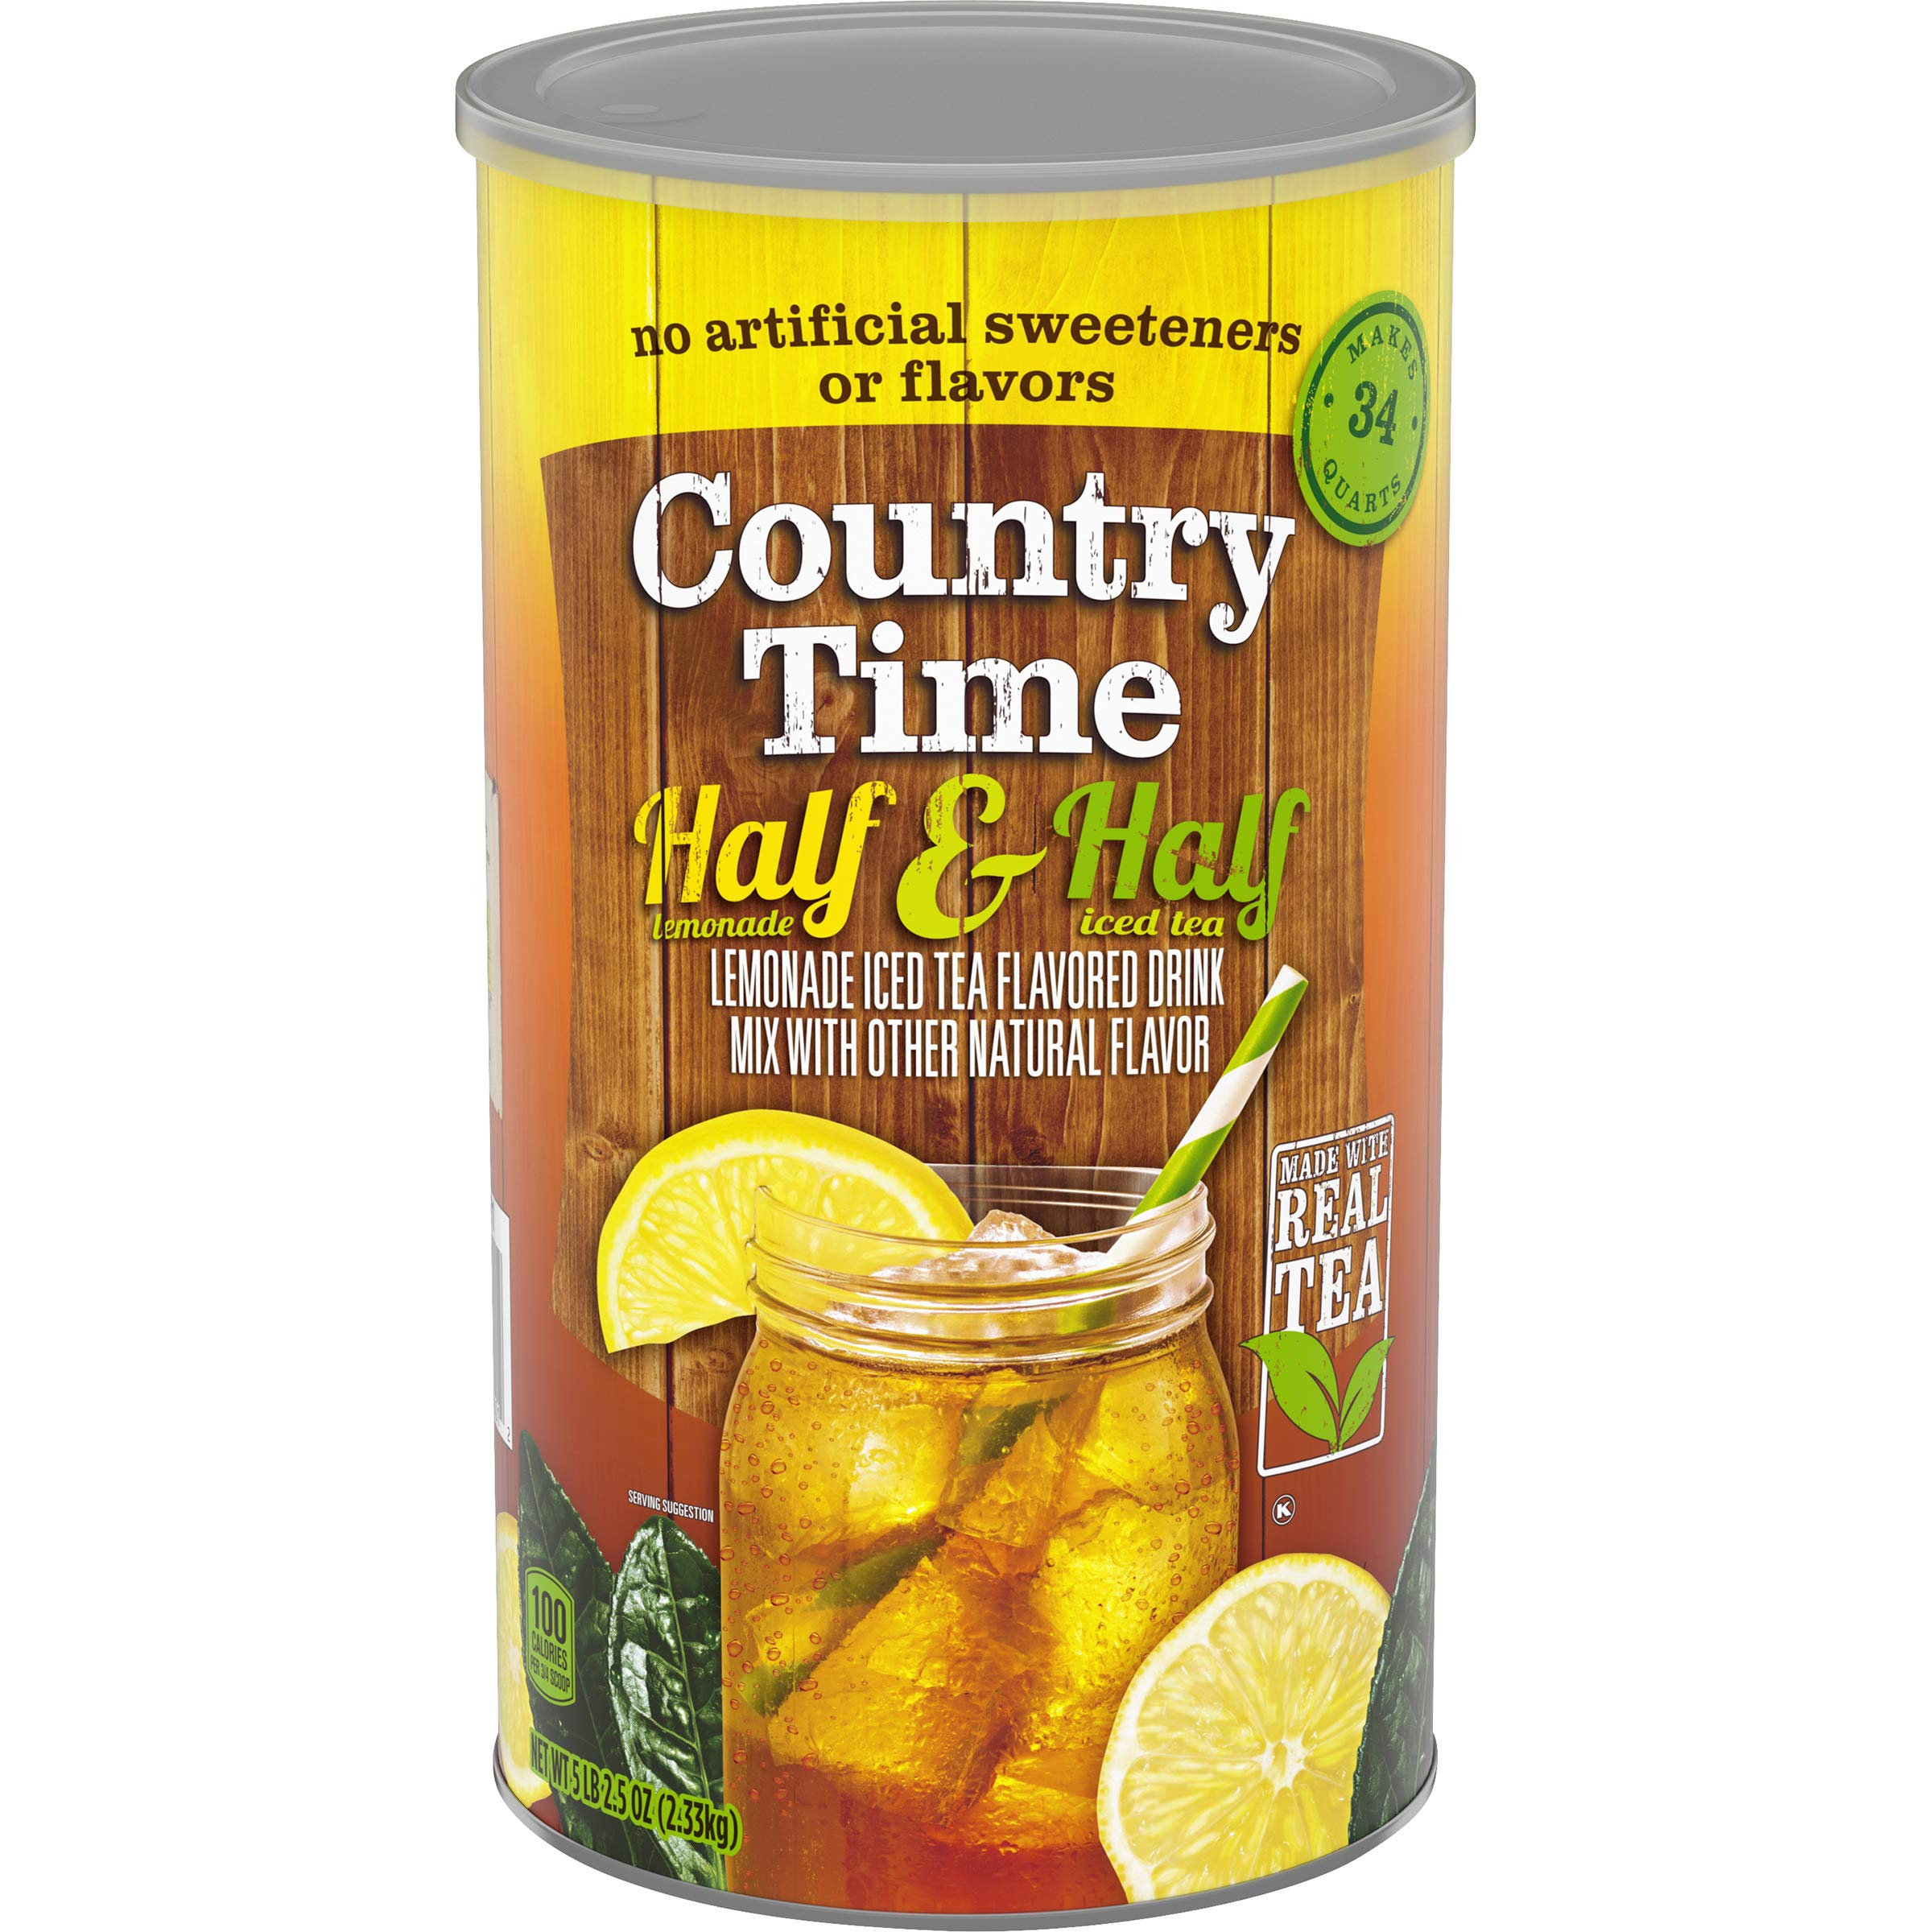 Country Time Powdered Drink Mix, Half Lemonade & Half Iced Tea, Caffeinated, 82.5 oz Cannister by Country Time